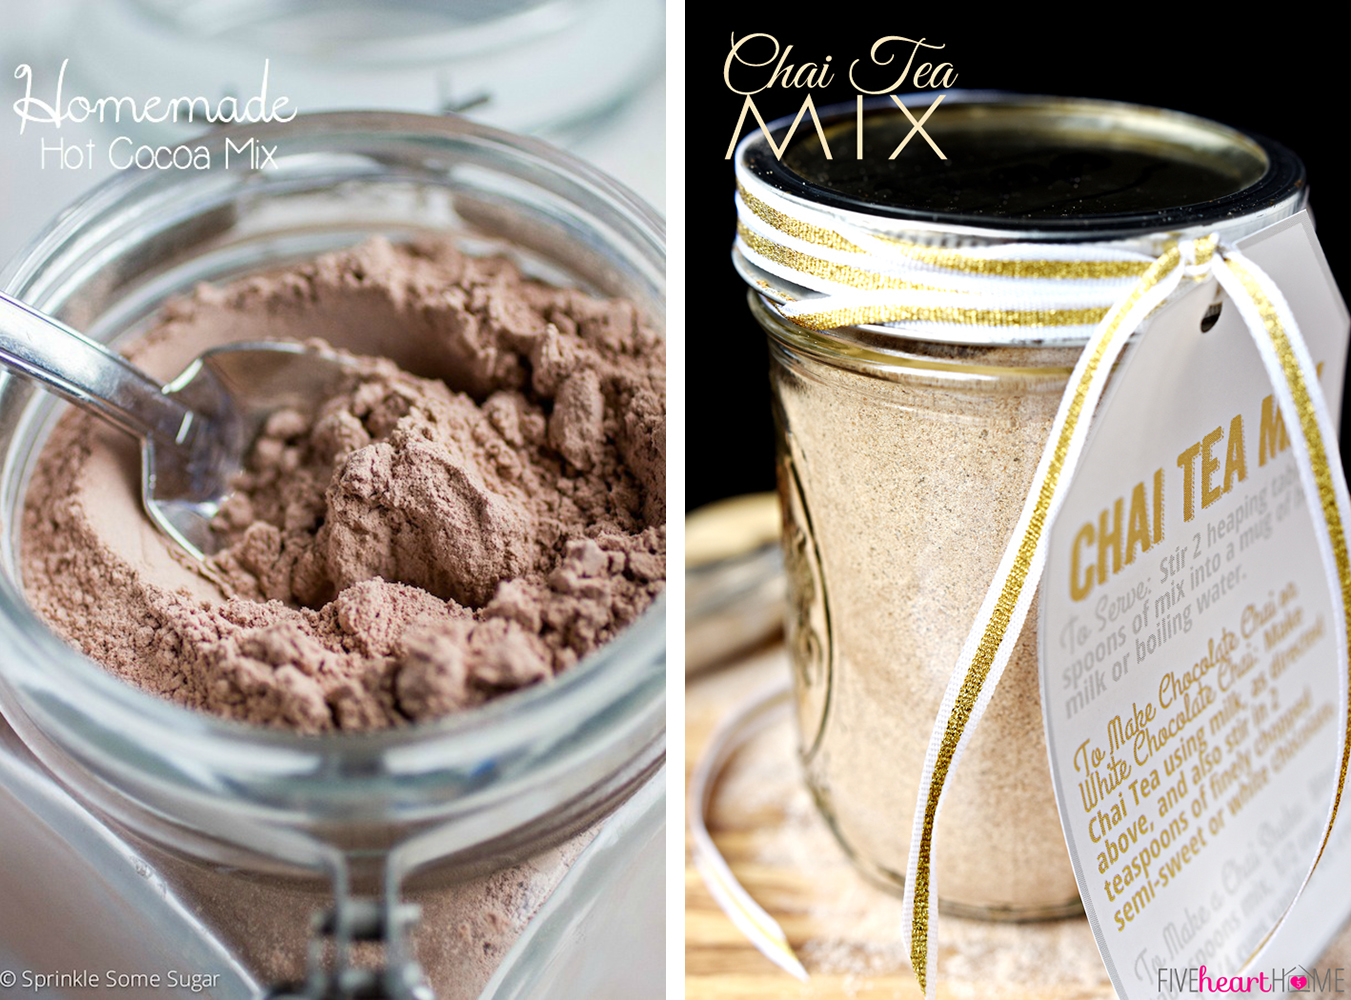 Last Minute DIY Valentine's Day Gift Ideas - Hot Chocolate and Chai Tea Mixes via Sprinkle Some Sugar and Five Heart Home | https://www.roseclearfield.com